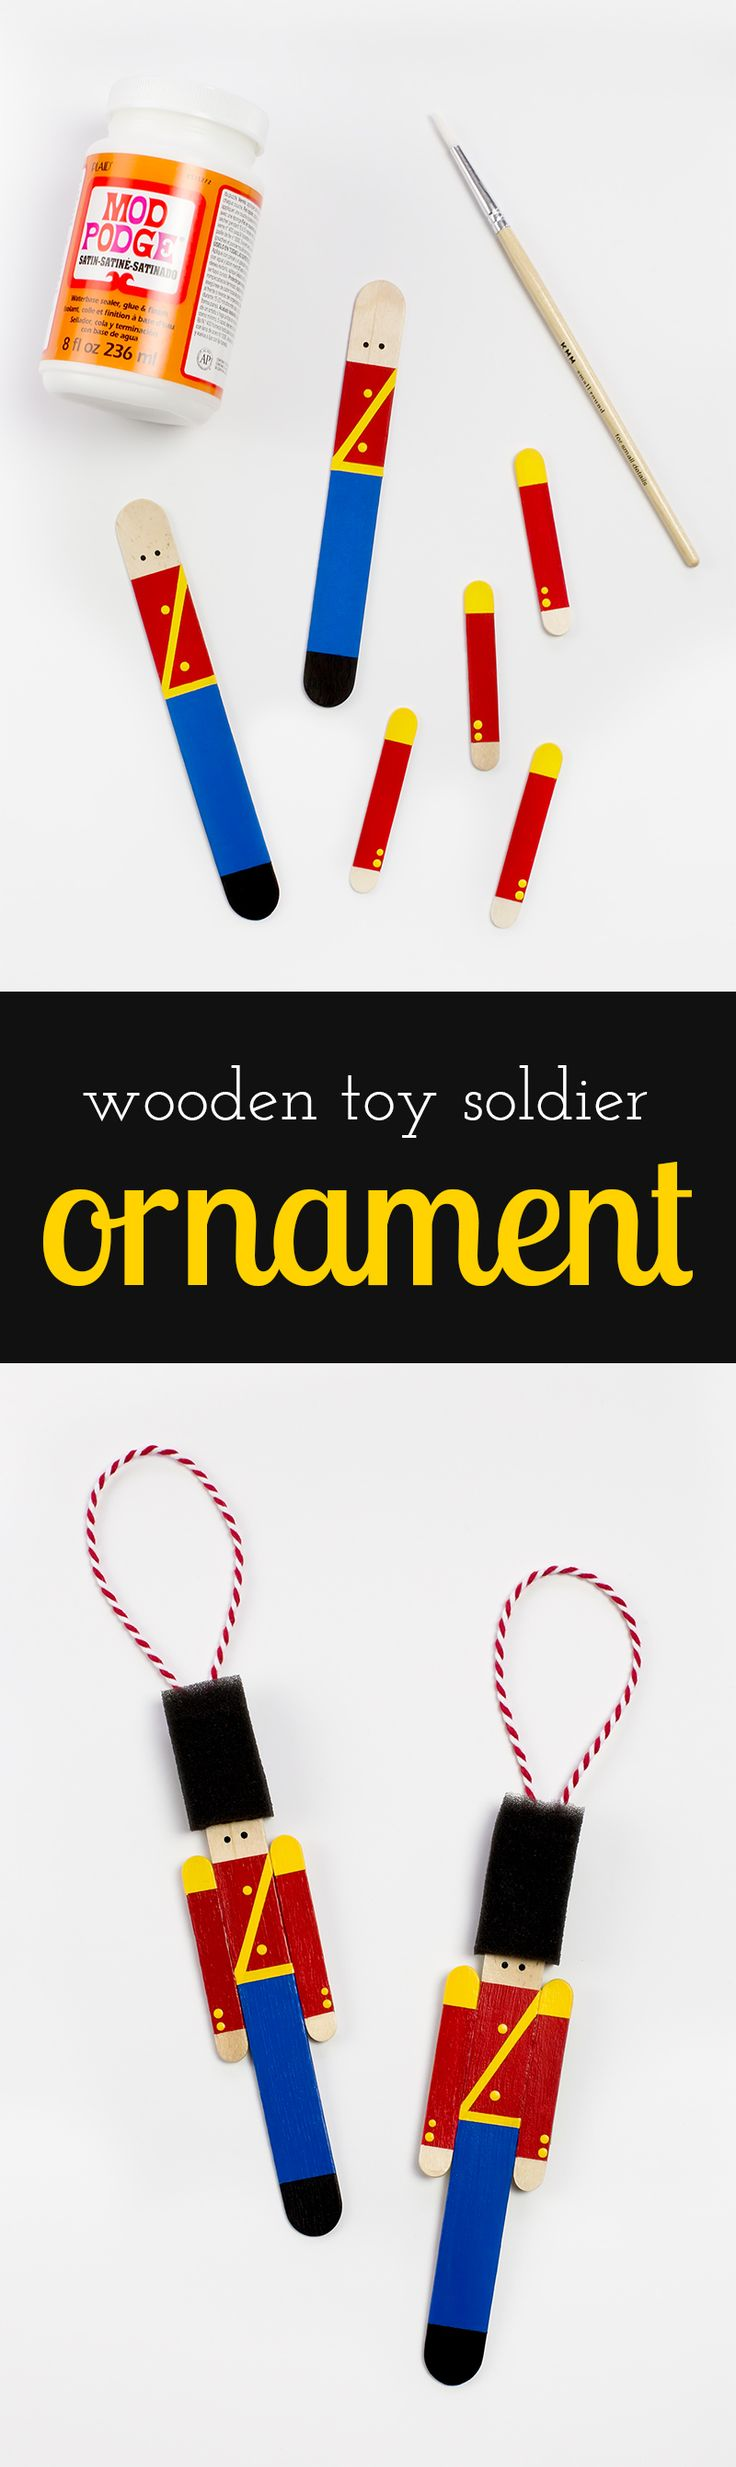 Crafters big and small will delight in making a Wooden Toy Soldier Ornament with craft sticks, paint, and one extra unique craft material.  via @https://www.pinterest.com/fireflymudpie/